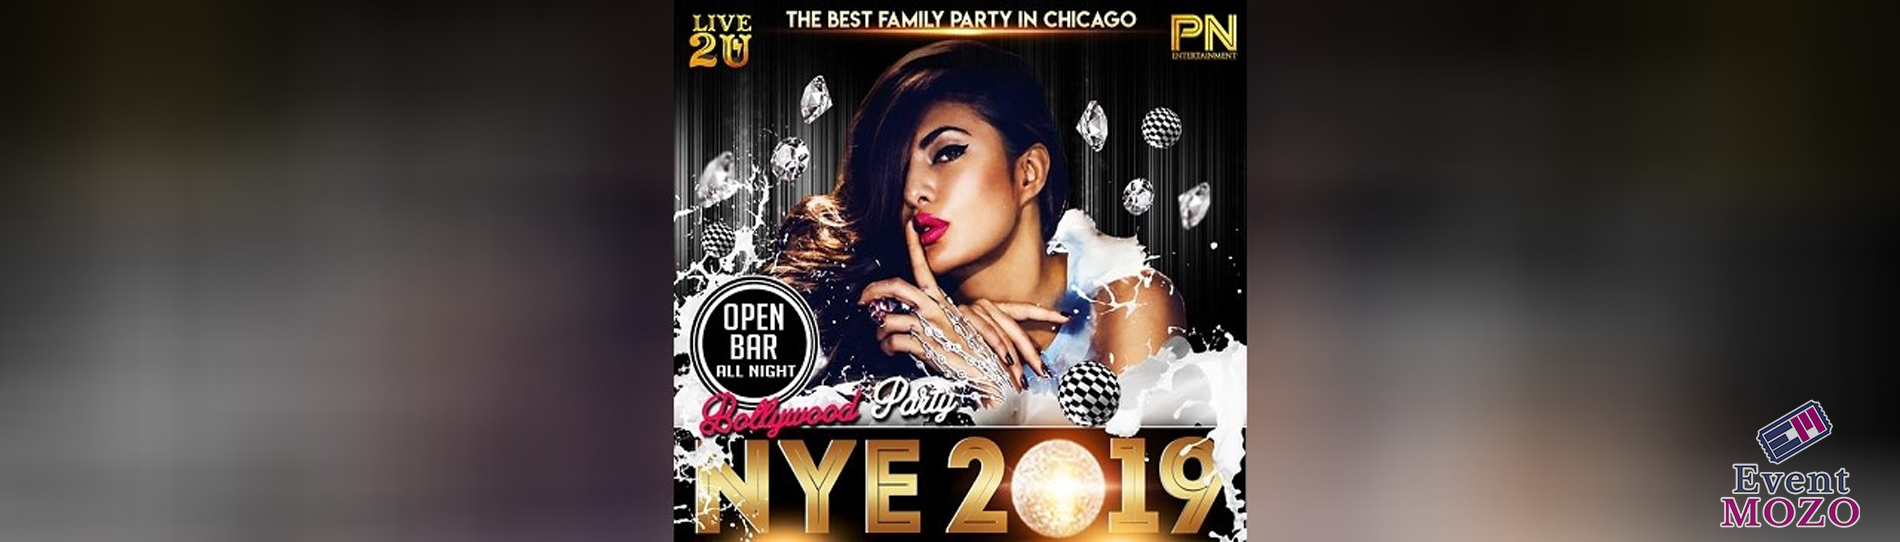 EventMozo NYE 2019 Bollywood Party